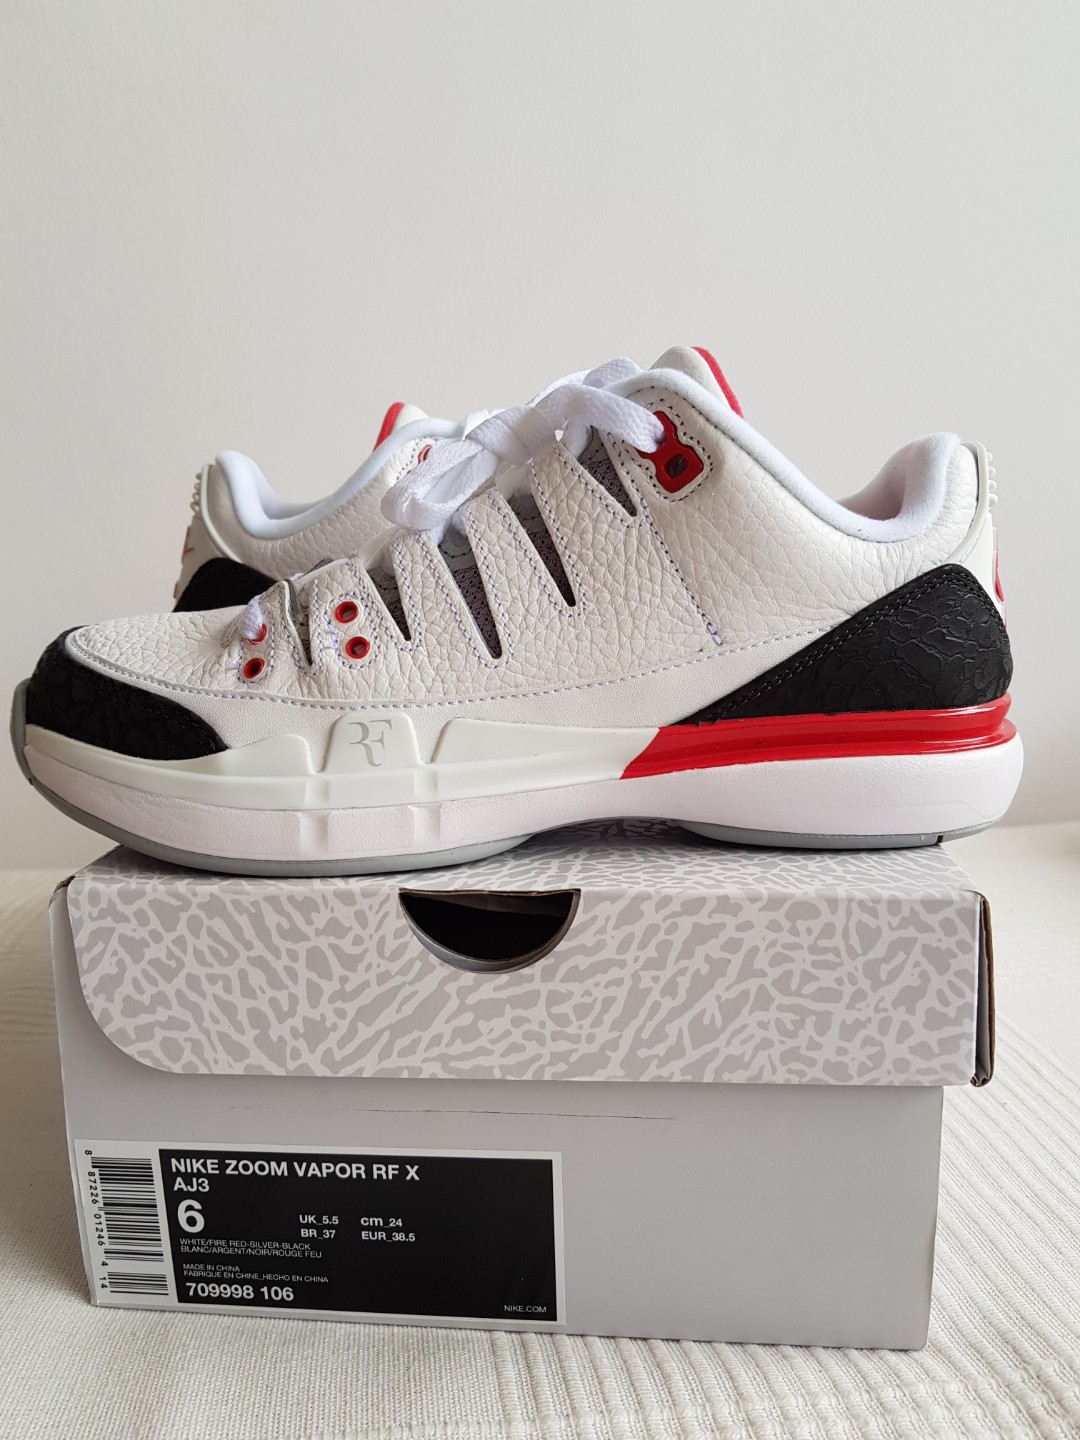 e6c1221ea0 NIKE ZOOM VAPOR RF X AJ3, Men's Fashion, Footwear, Sneakers on Carousell